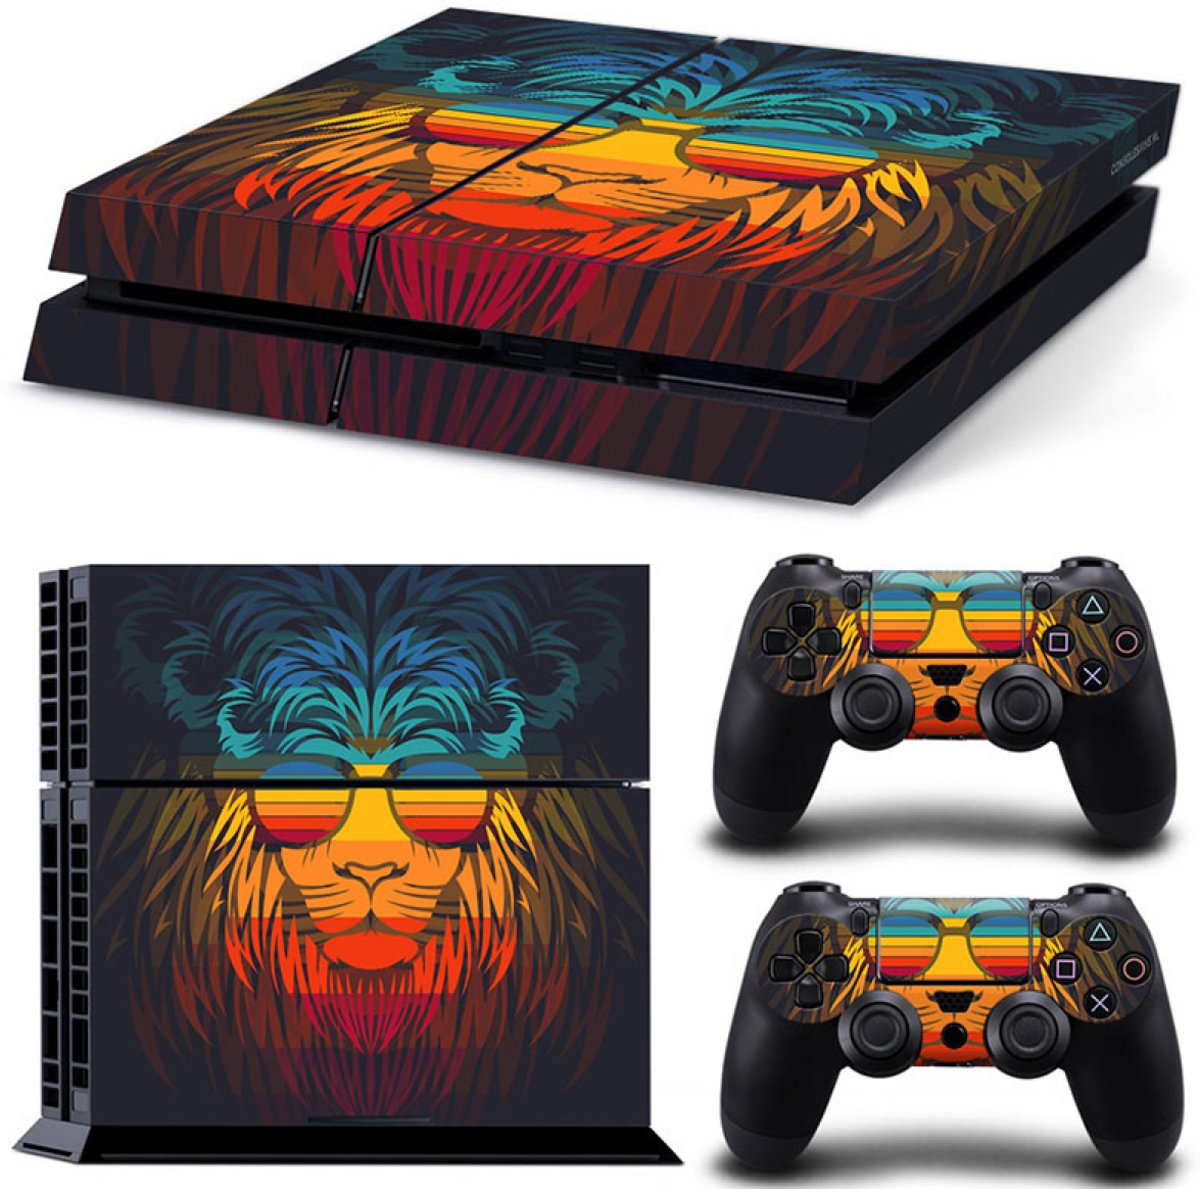 Retro Leeuw - PS4 Console Skins PlayStation Stickers